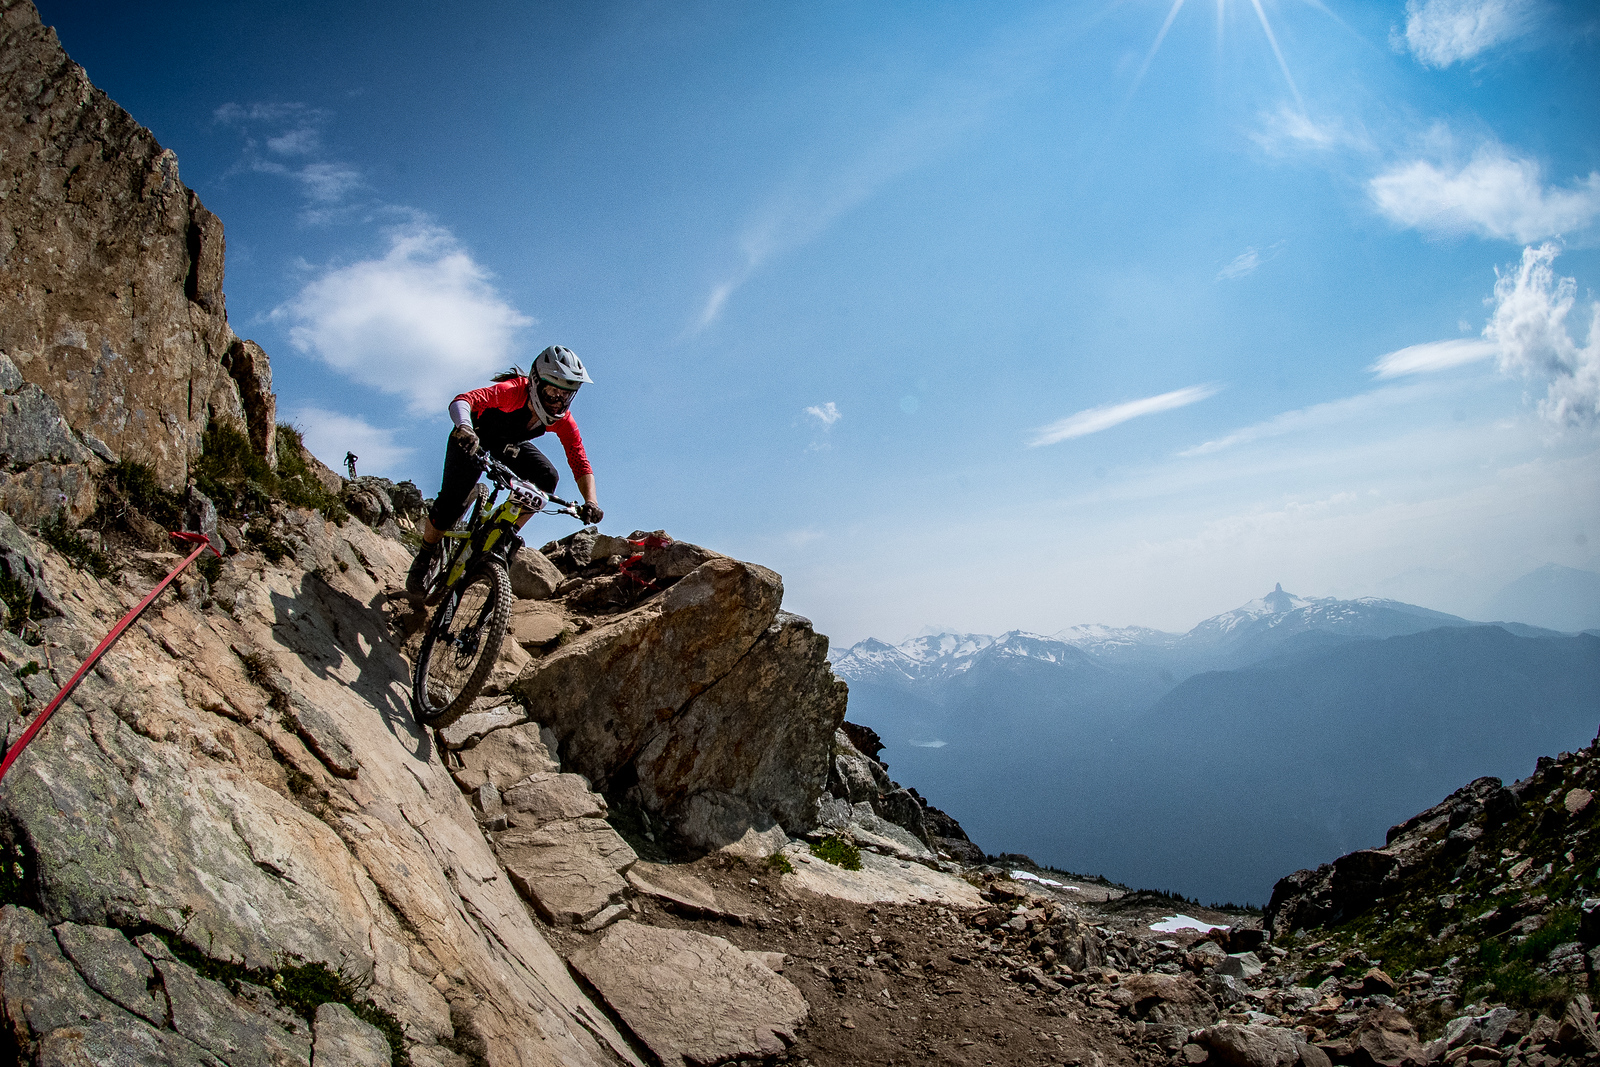 Britt Phelan. Enduro World Series Training. Crankworx Whistler 2017. Photo by: Scott Robarts